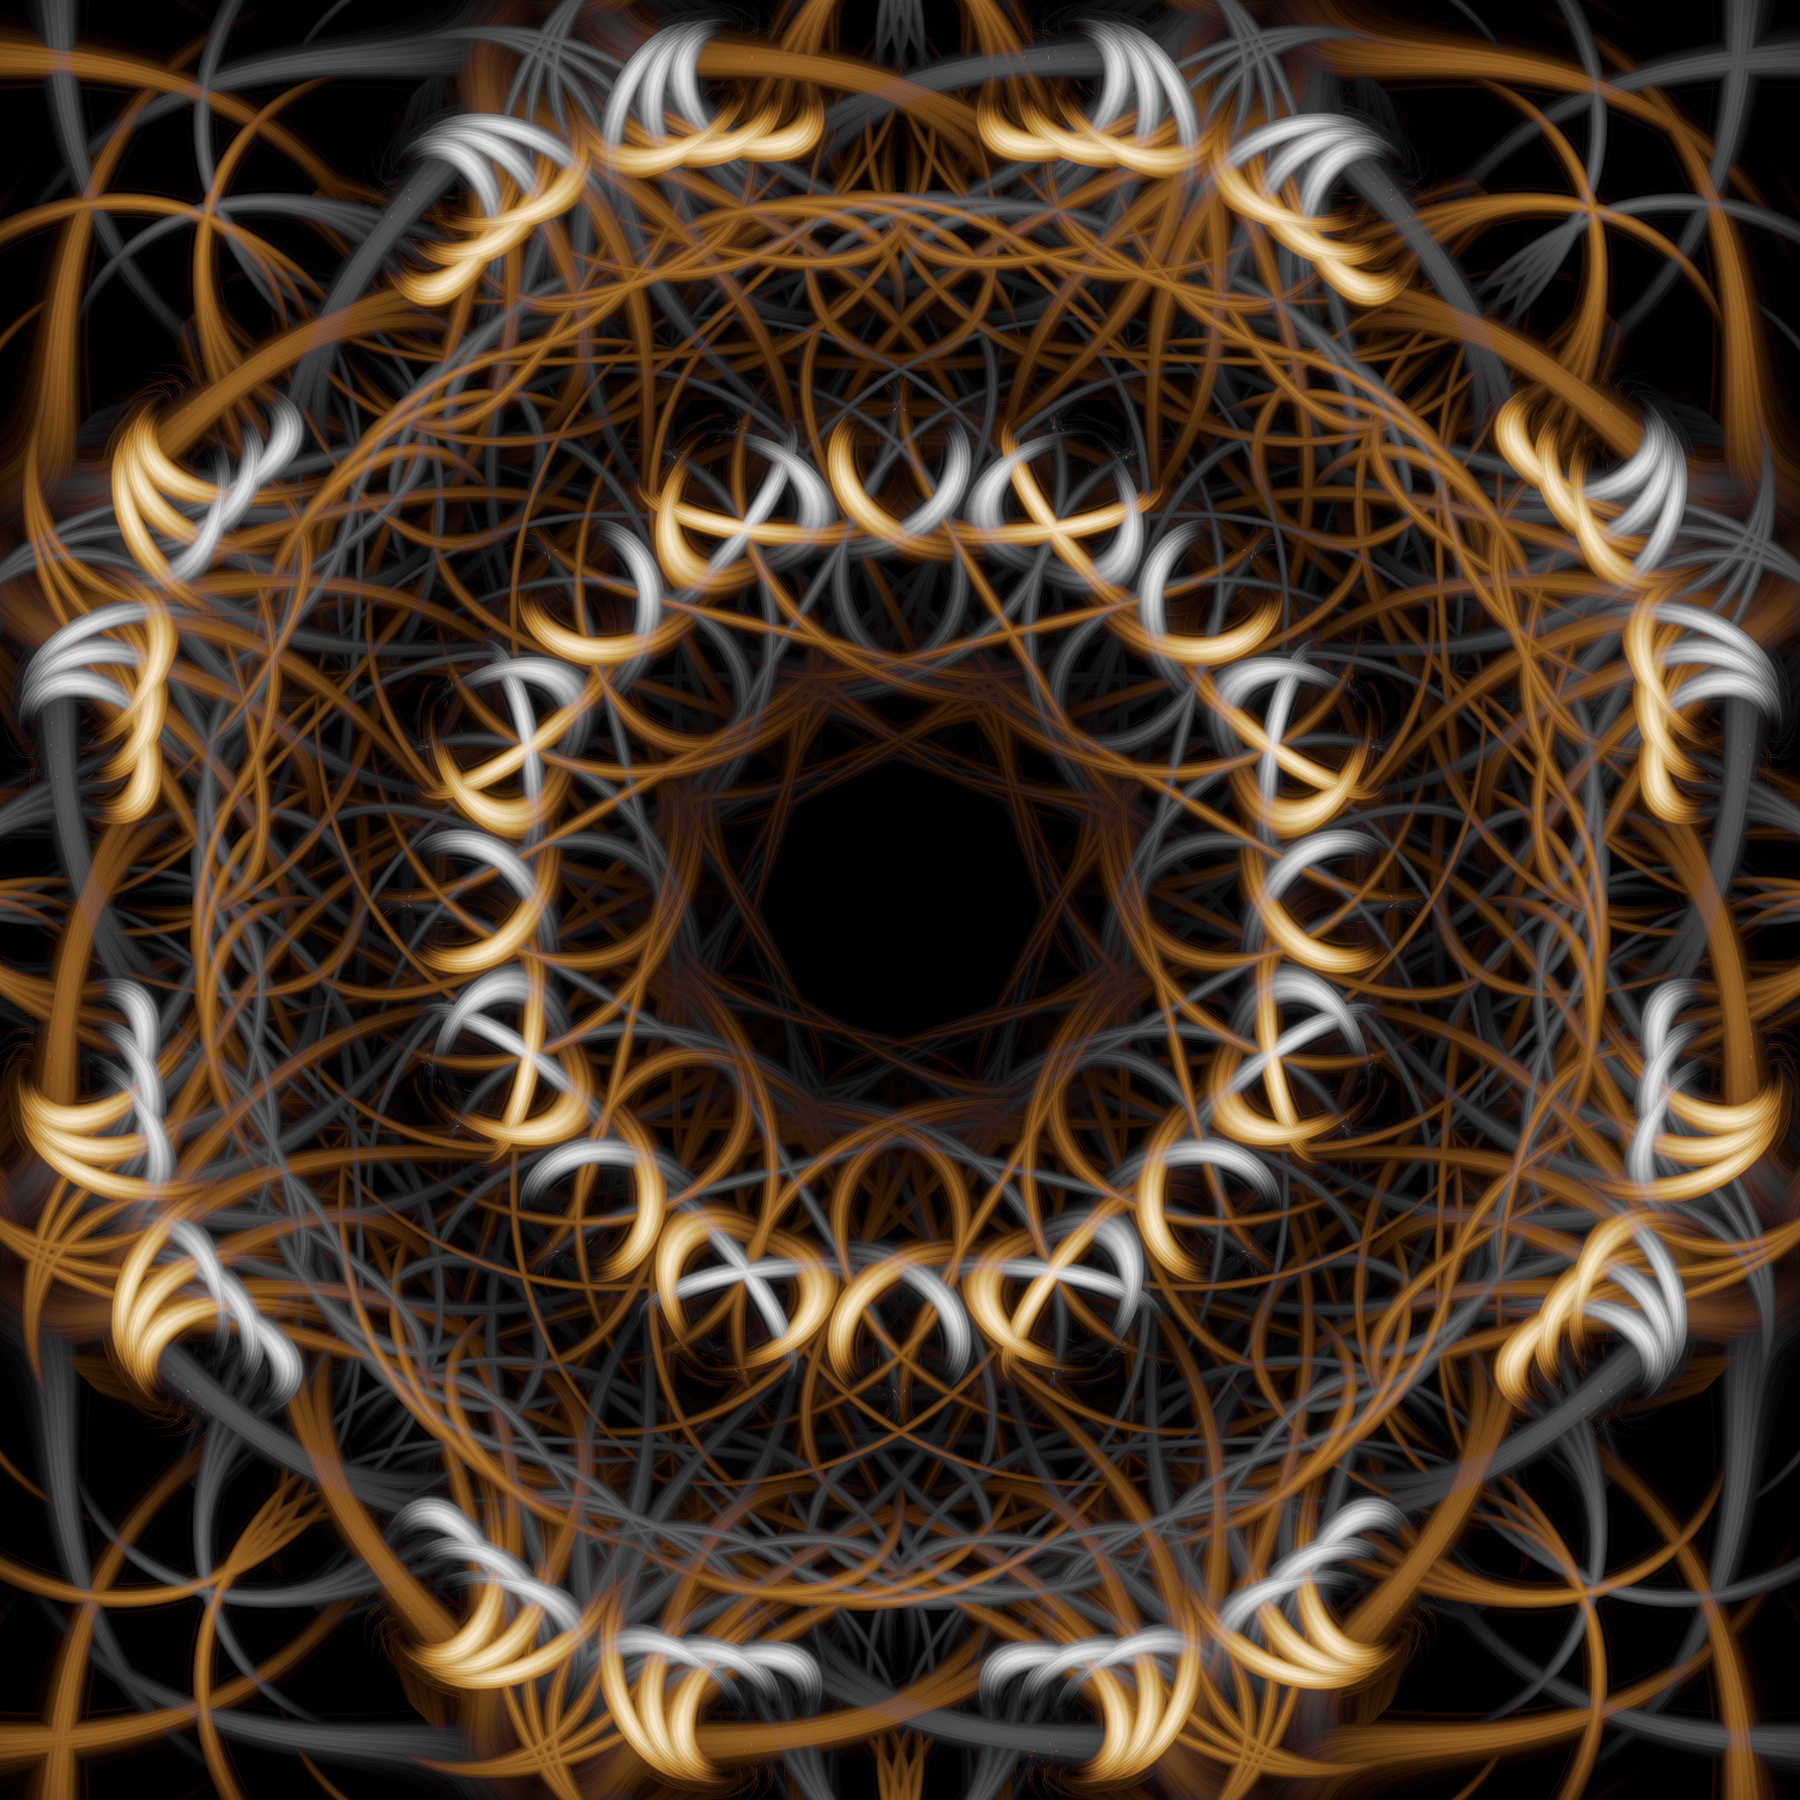 Abstract Dreamcatcher Texture, Aboriginal, Stock, Photograph, Picture, HQ Photo